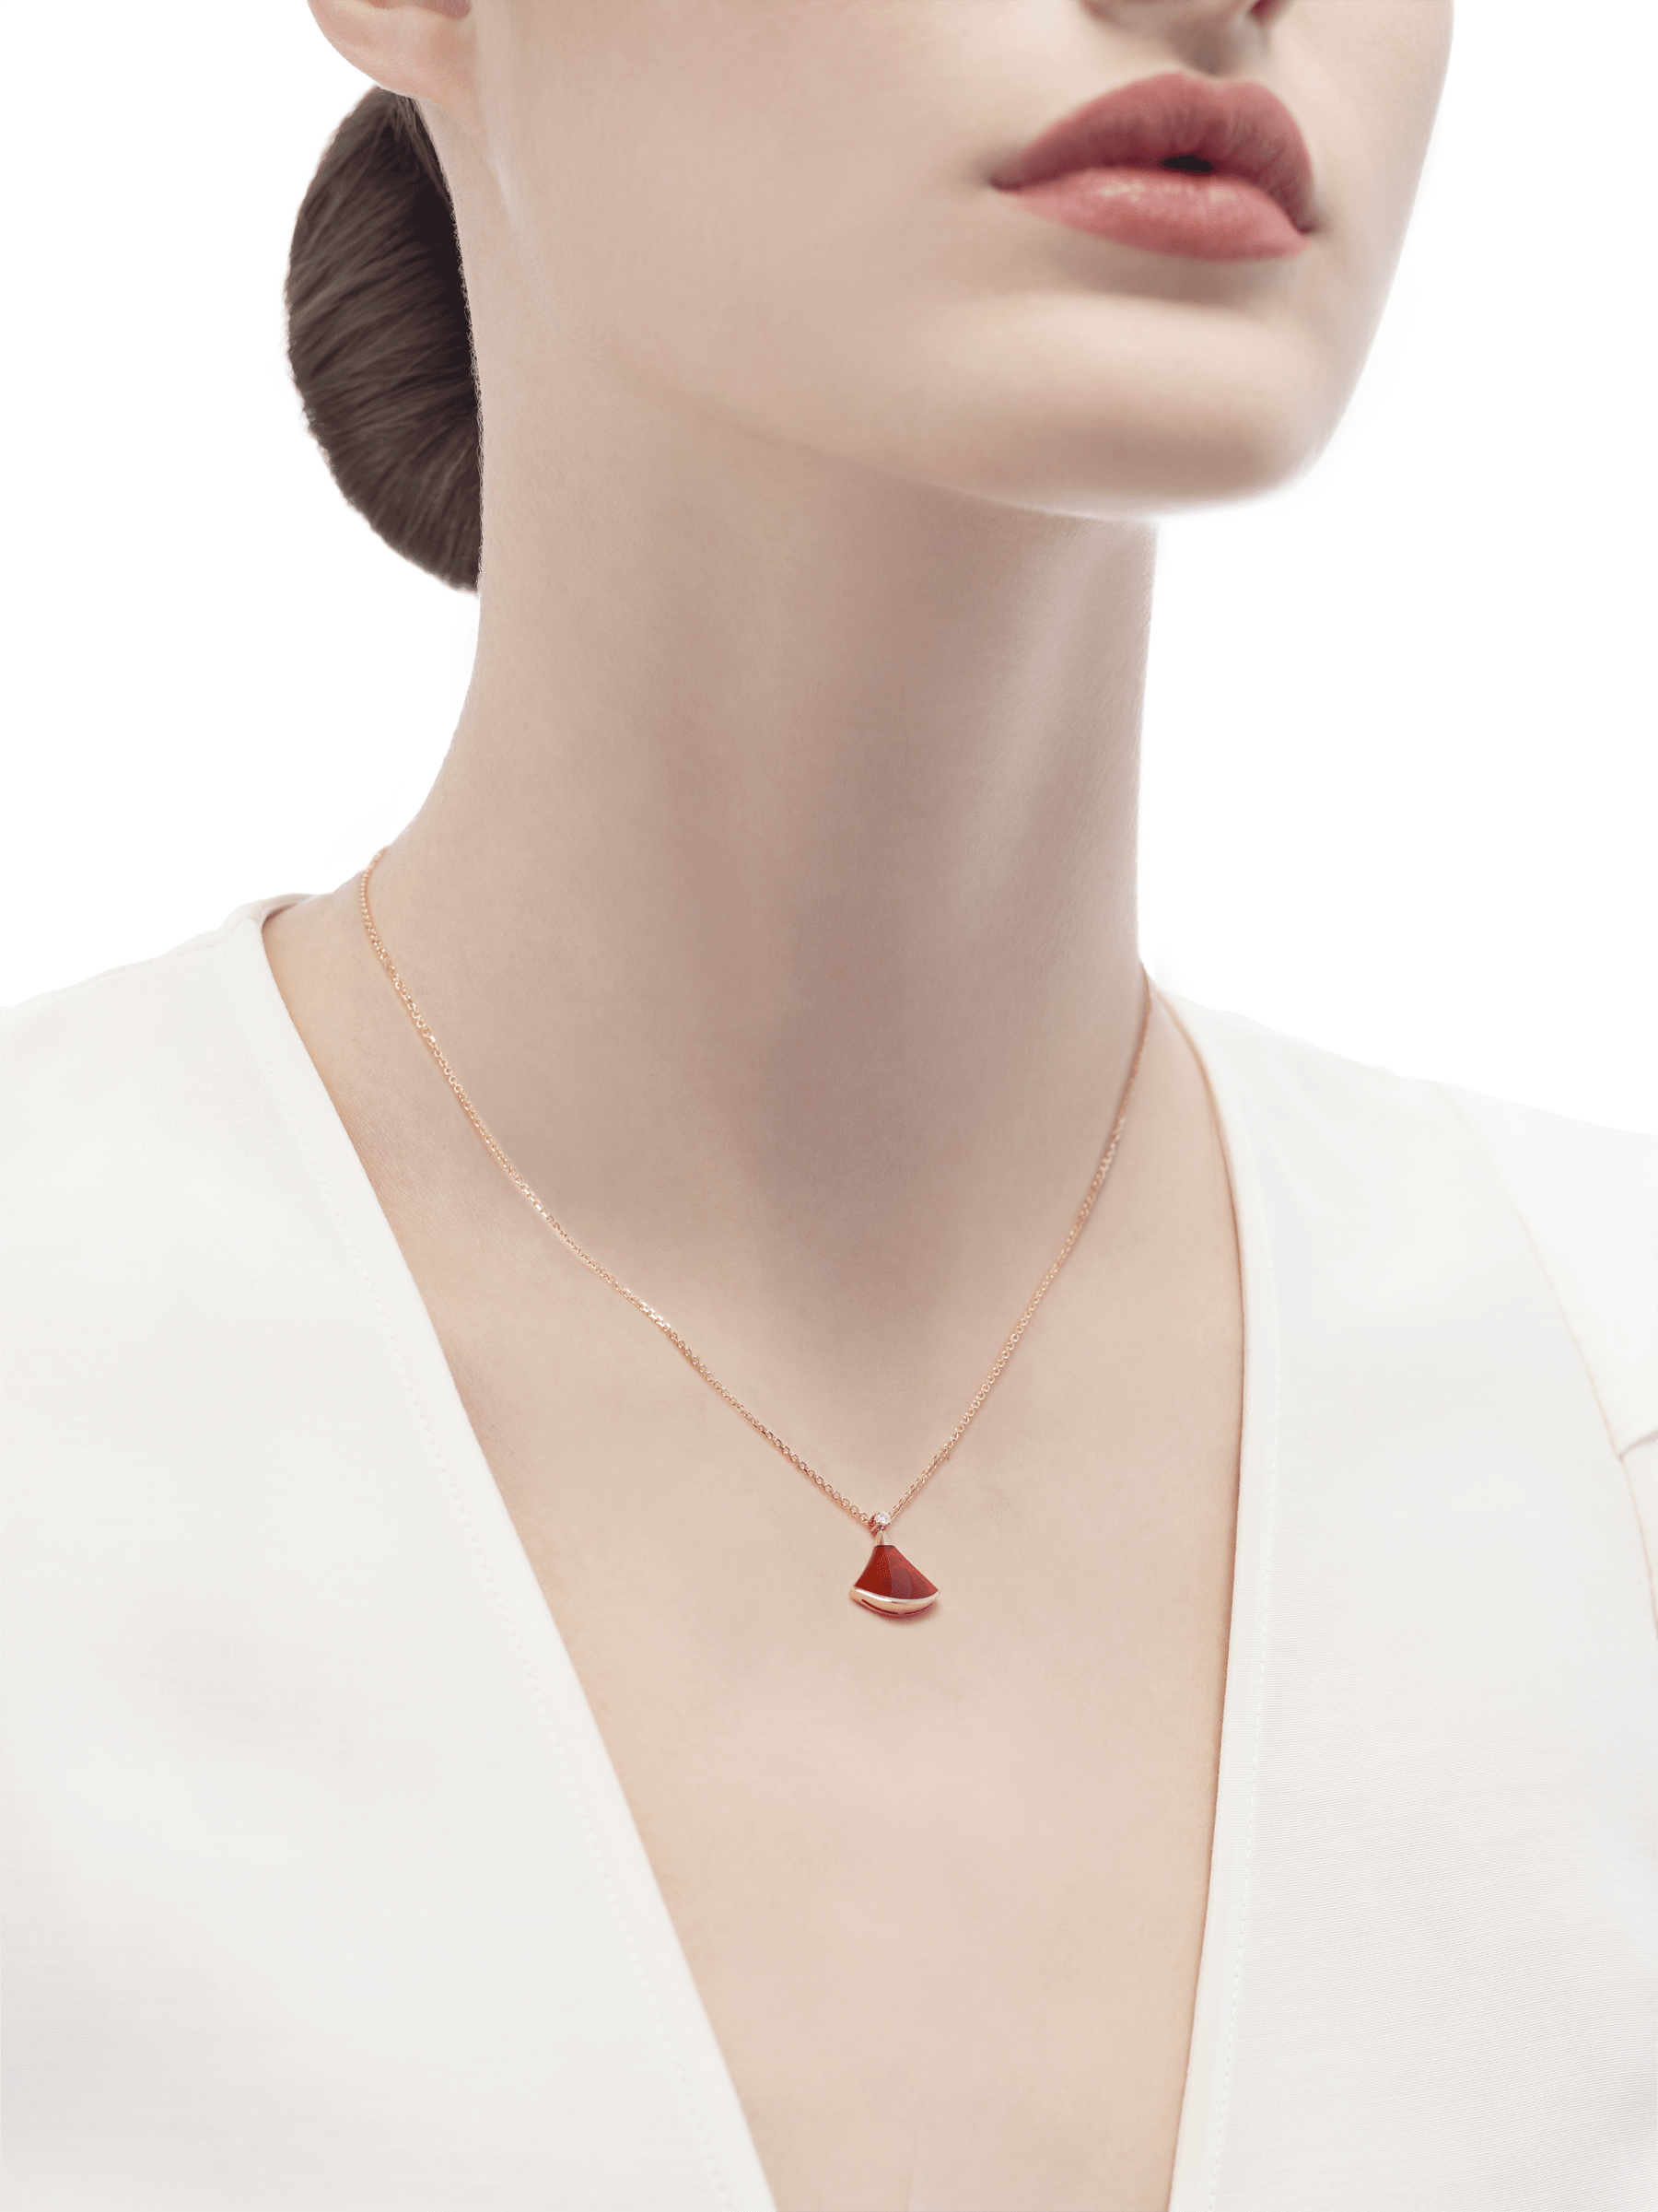 DIVAS' DREAM necklace in 18 kt rose gold with 18 kt rose gold pendant set with one diamond and carnelian. 350583 image 3